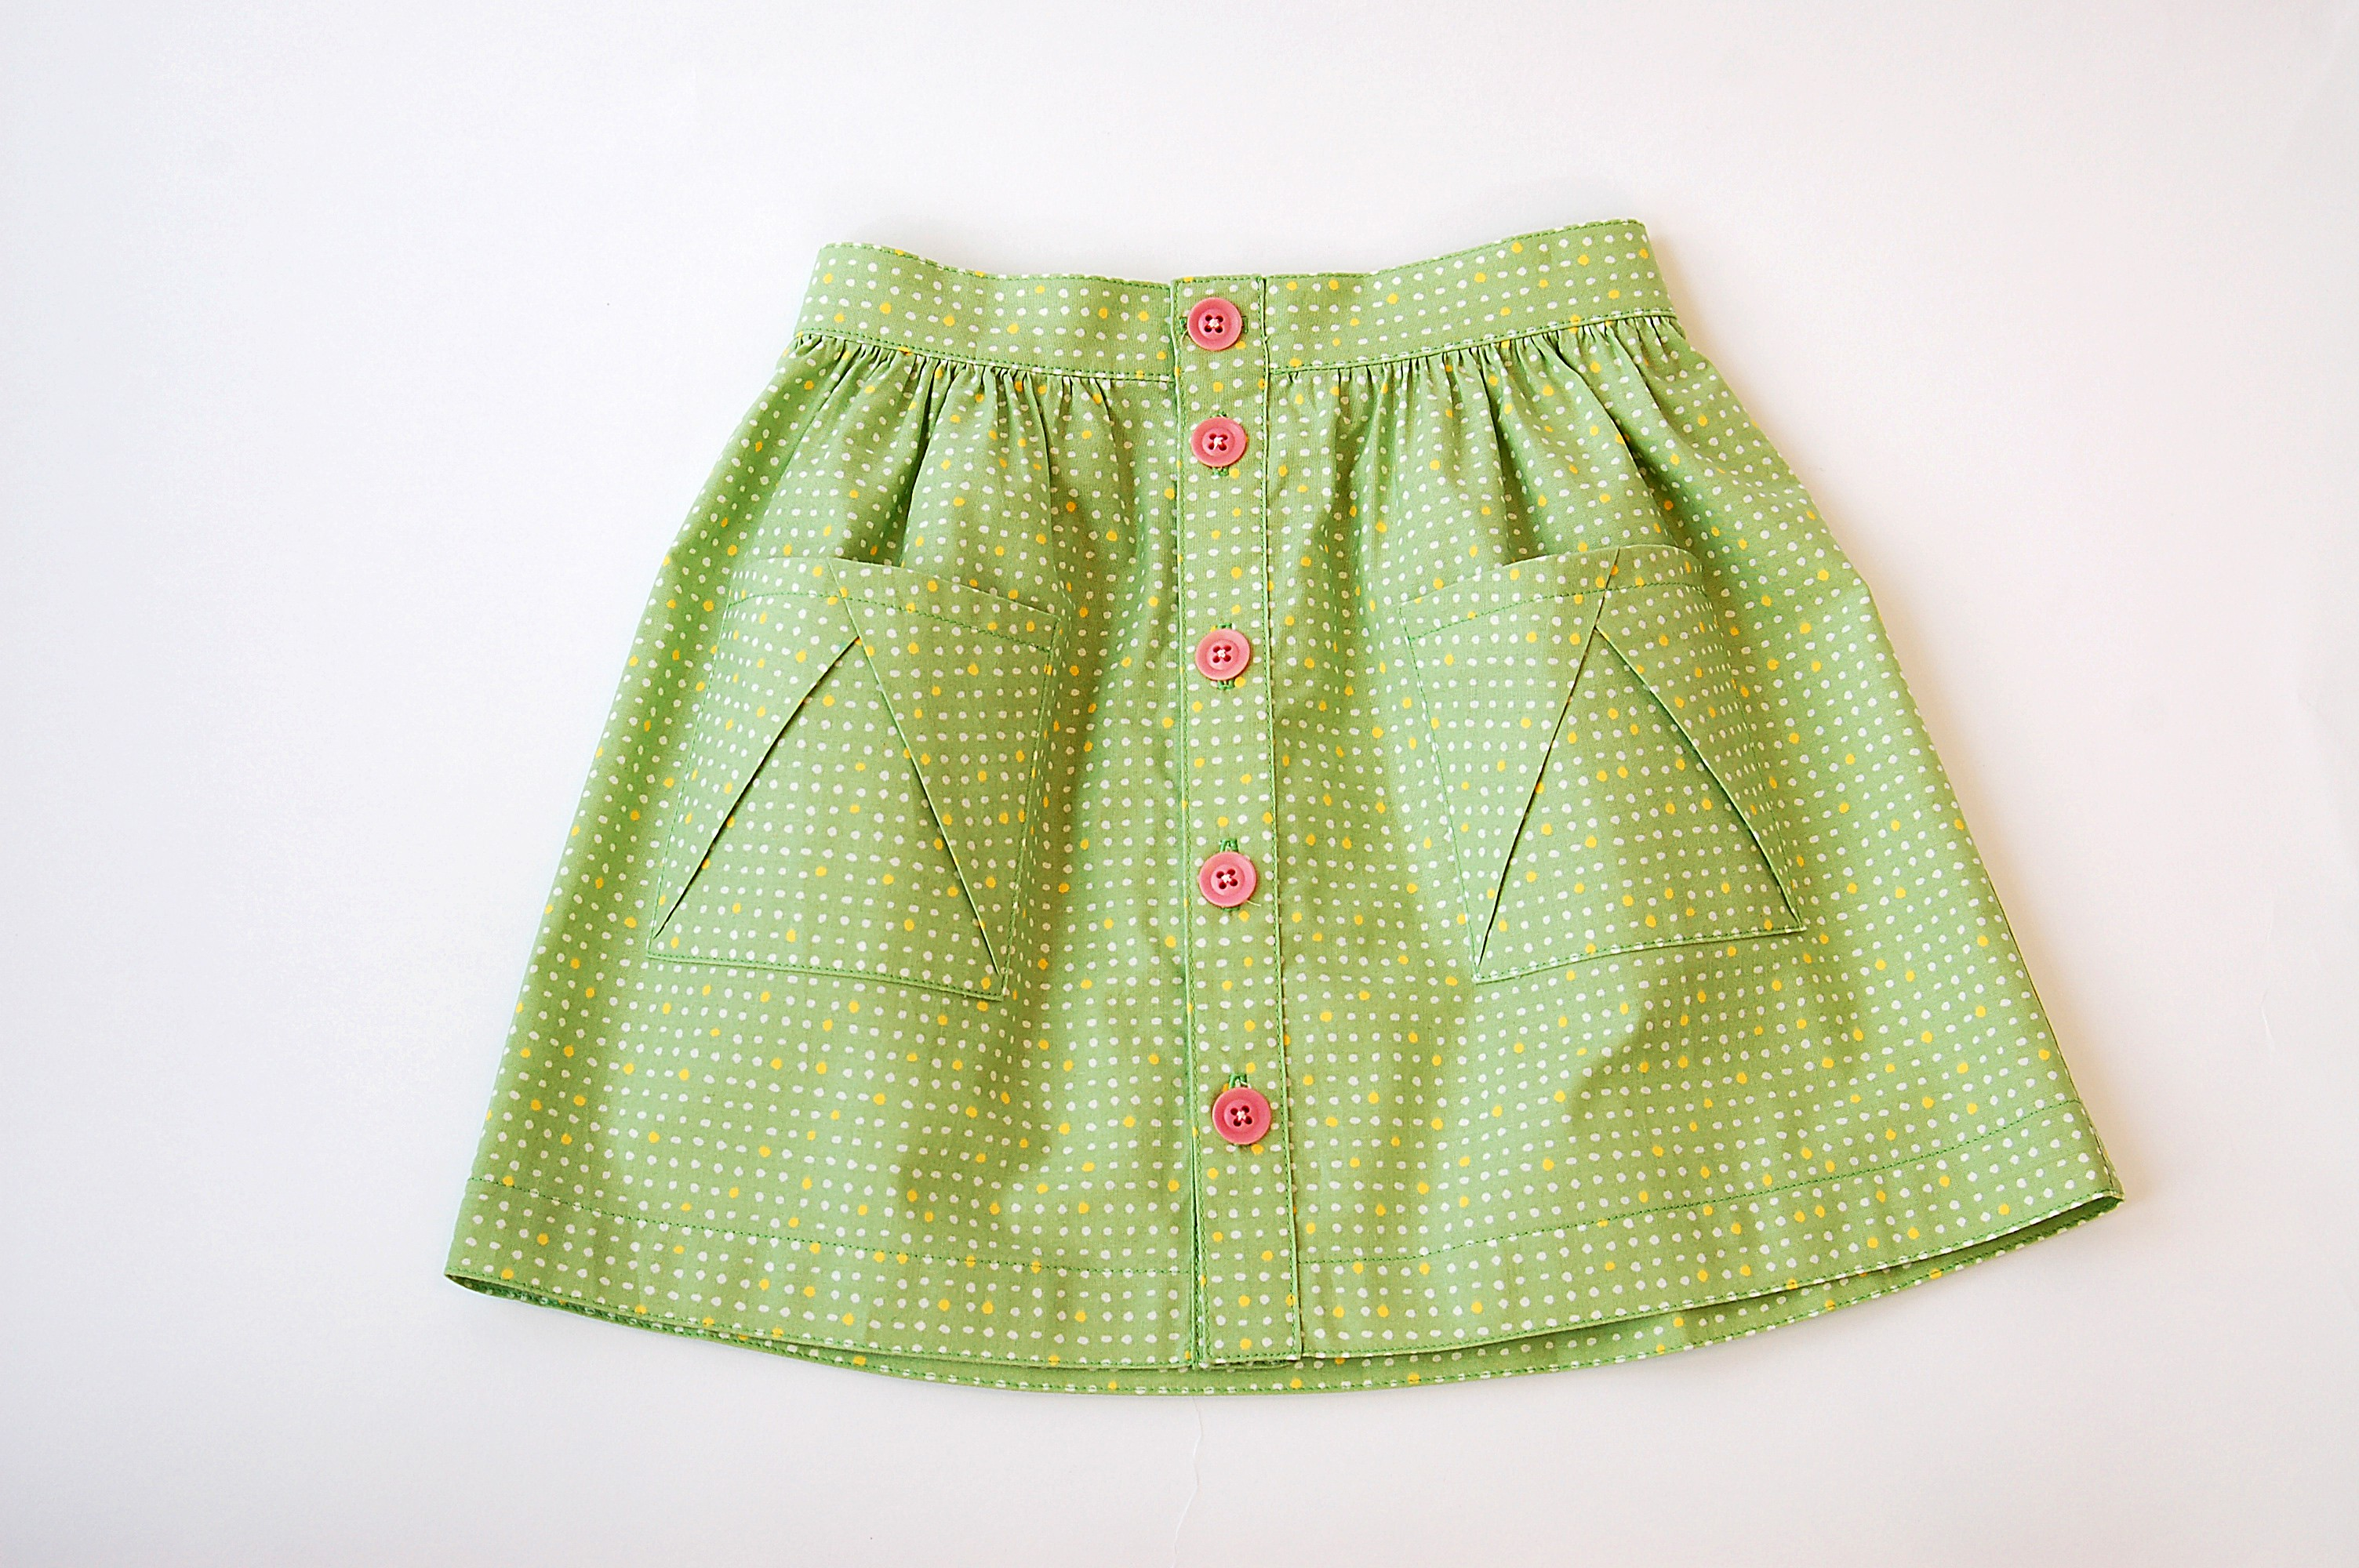 Introducing the Hopscotch Skirt Sewing Pattern | Blog | Oliver + S